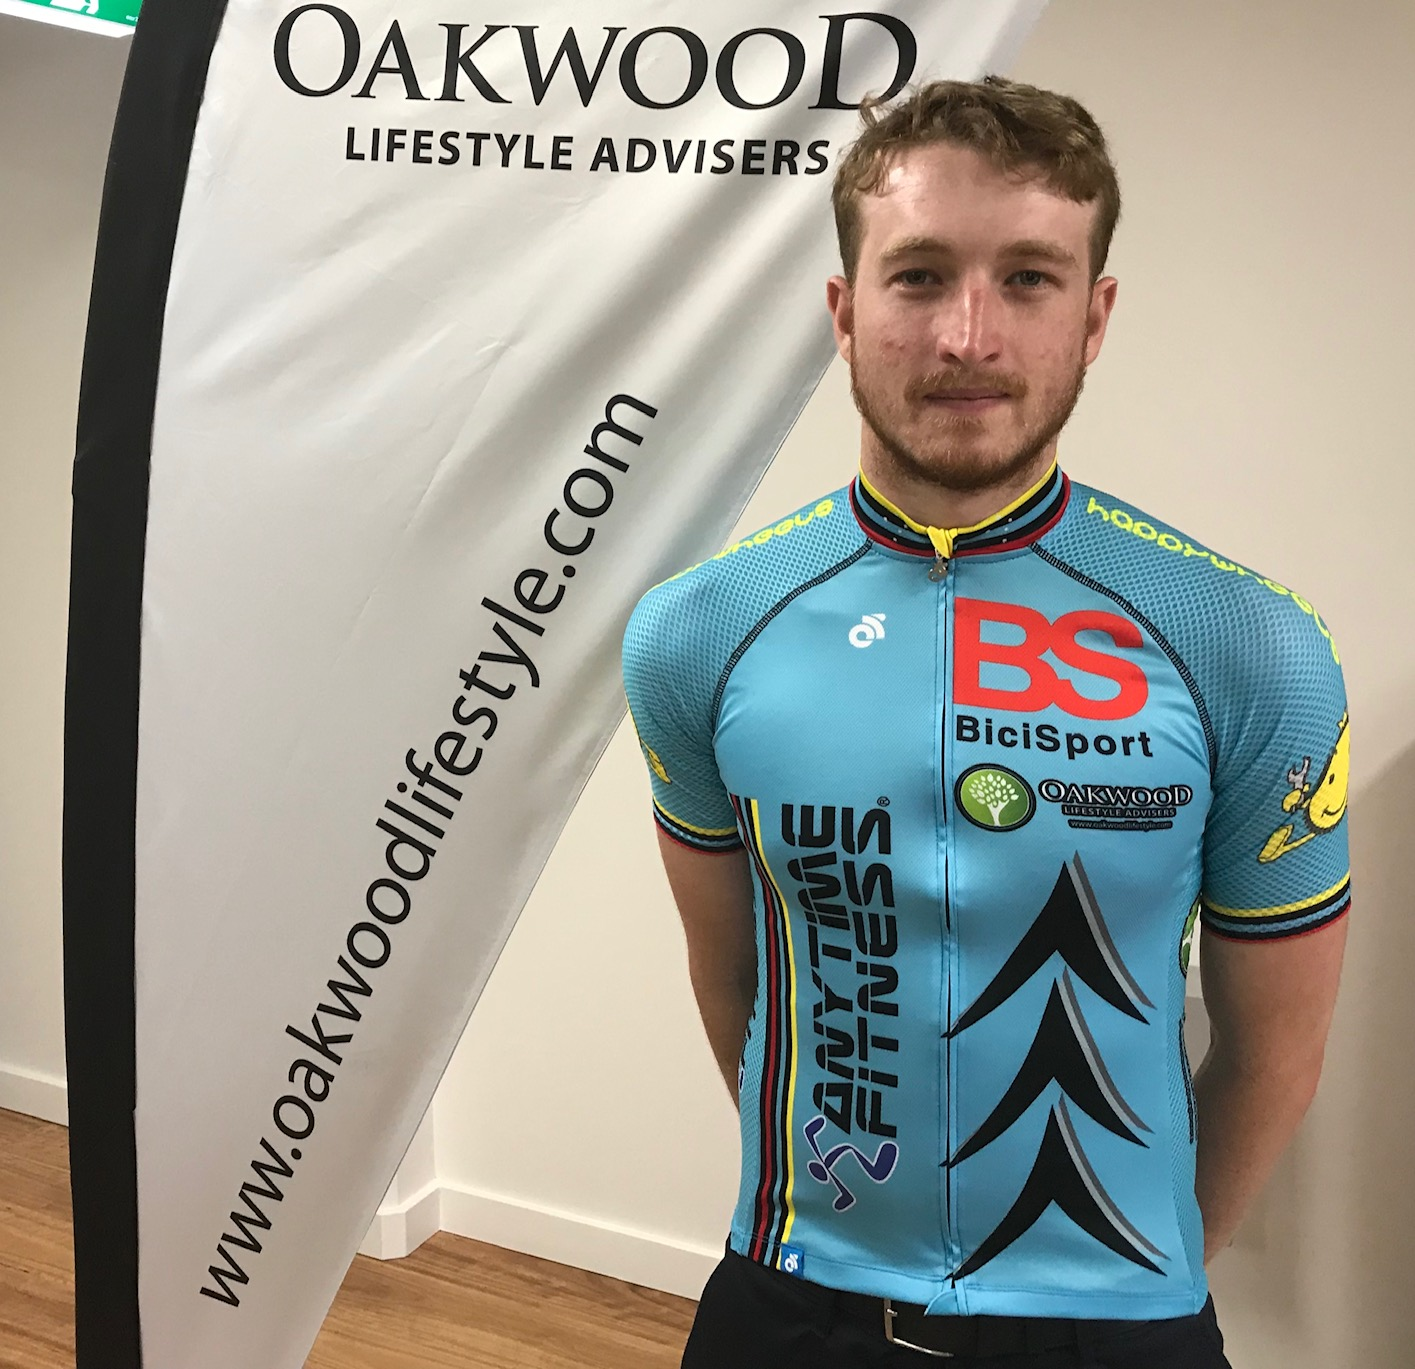 Conor Tarlington with the new summer style all blue BiciSport jersey